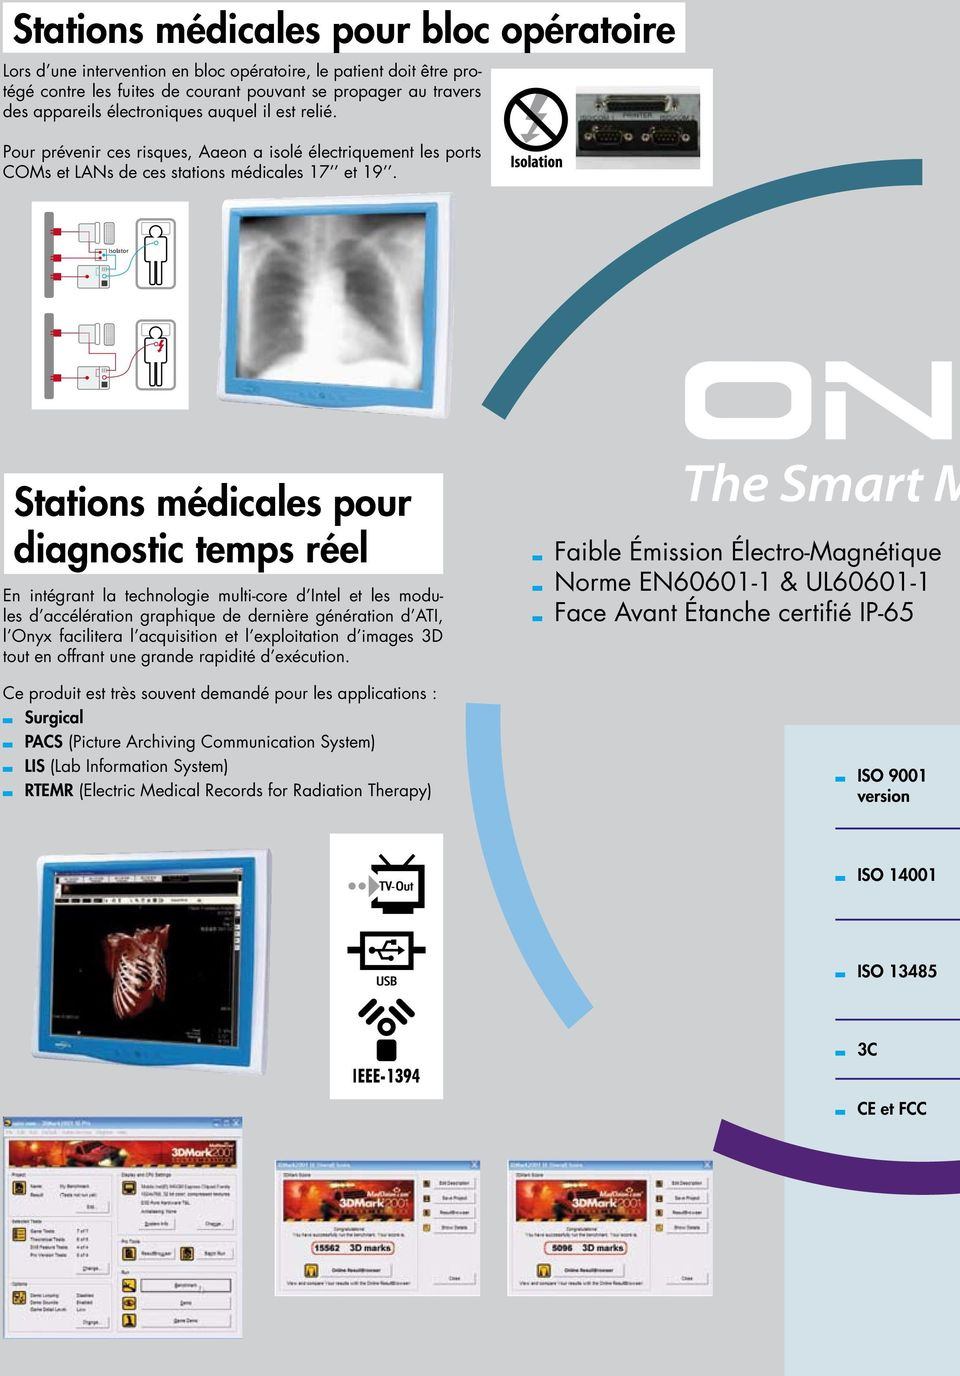 Isolator Stations médicales pour diagnostic temps réel En intégrant la technologie multi-core d Intel et les modules d accélération graphique de dernière génération d ATI, l Onyx facilitera l